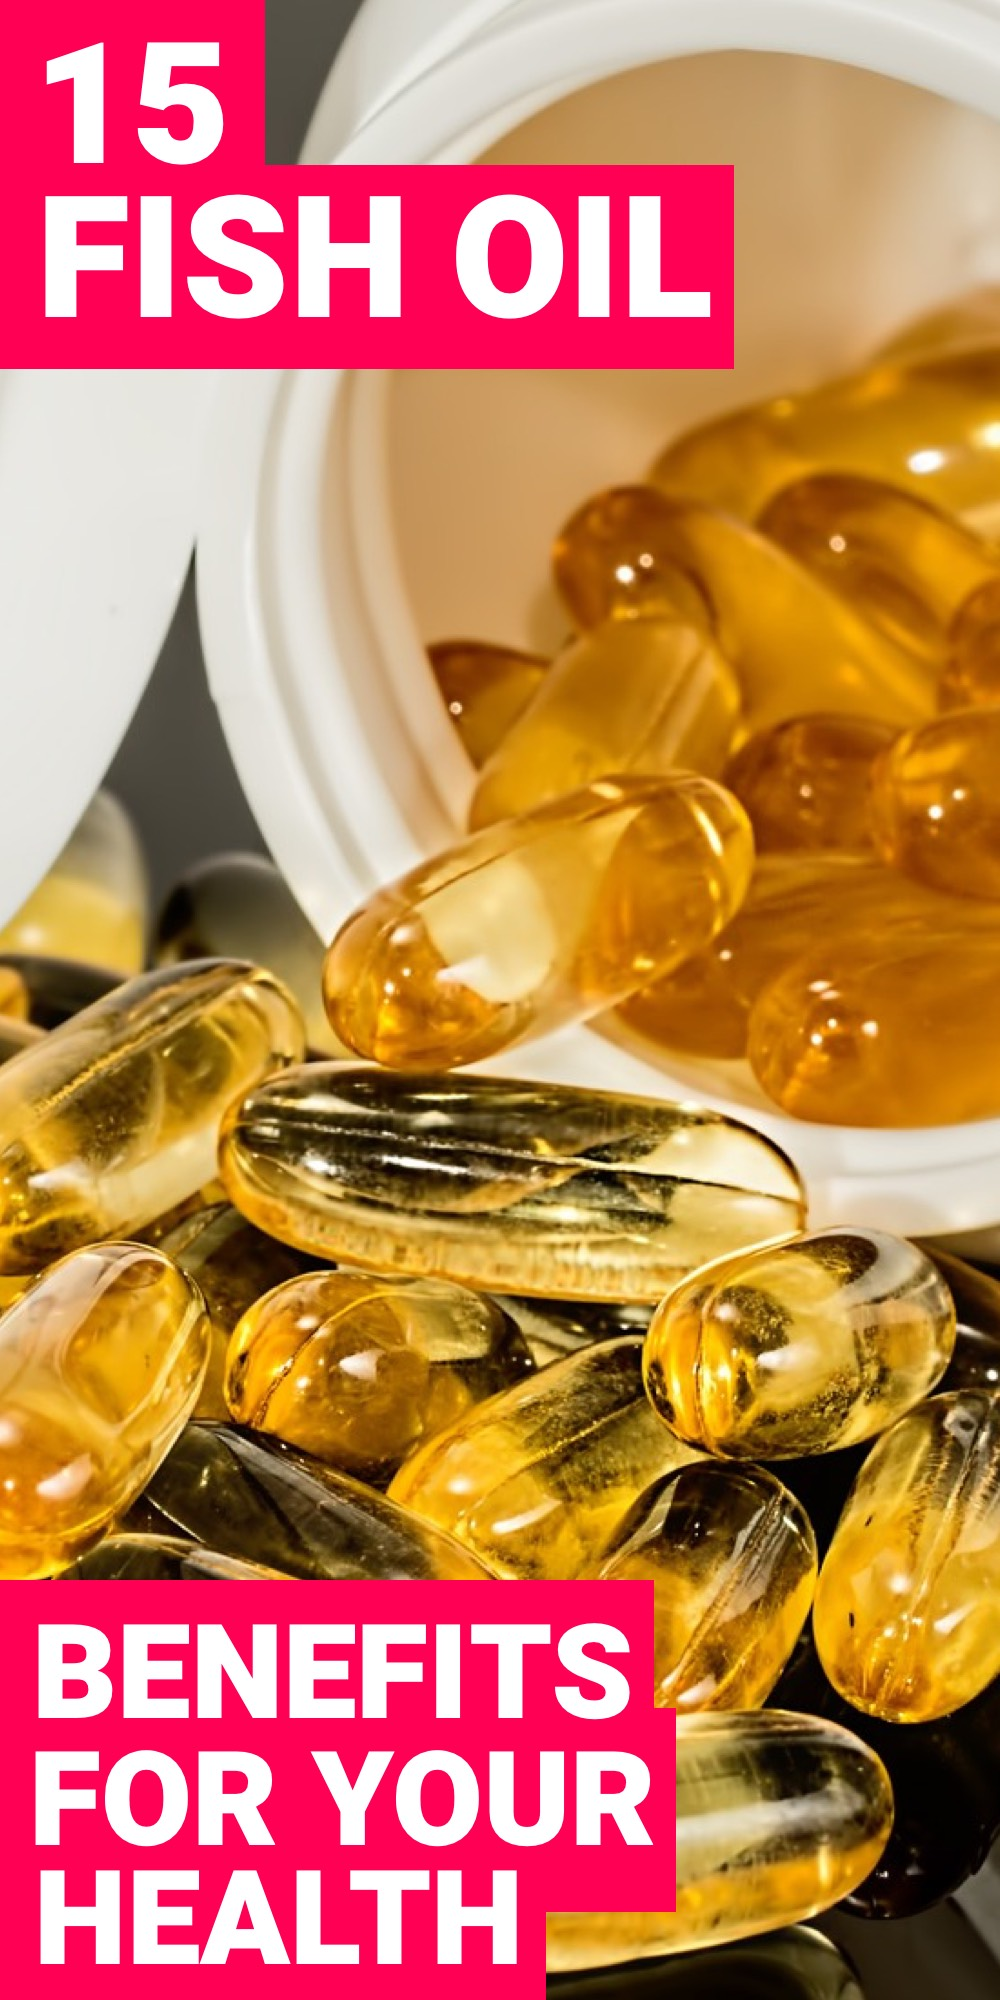 Fish oil benefits are vast. Here are 15 fish oil benefits that you need to know about.